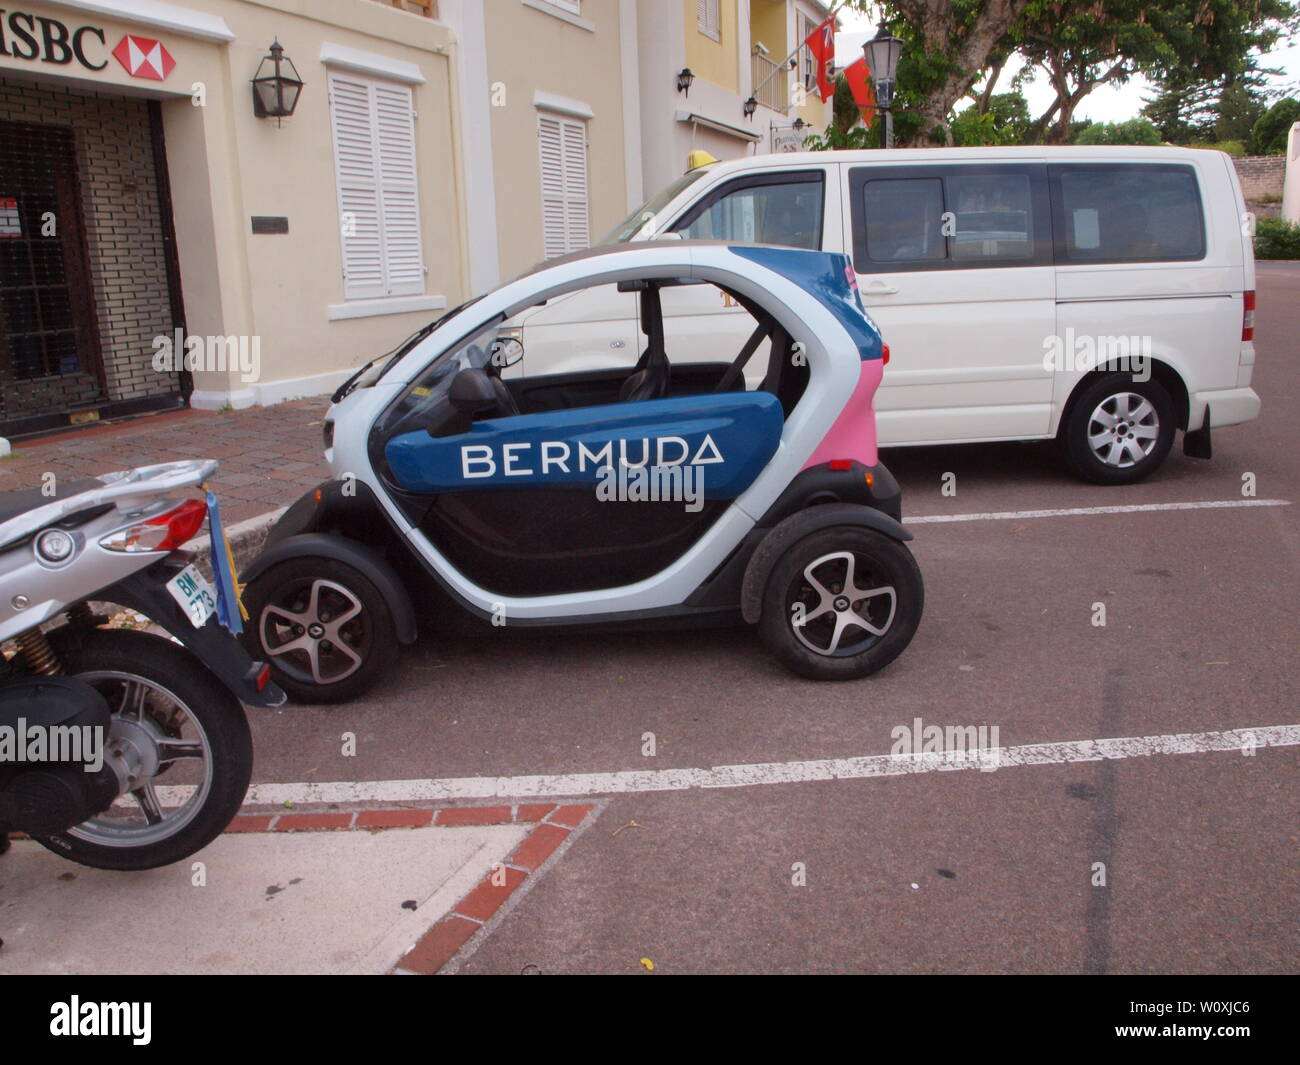 The latest tourist travel adventure in Bermuda. The Renault Twizy, an all electric vehicle that allows freedom and independence to tour safely. Stock Photo